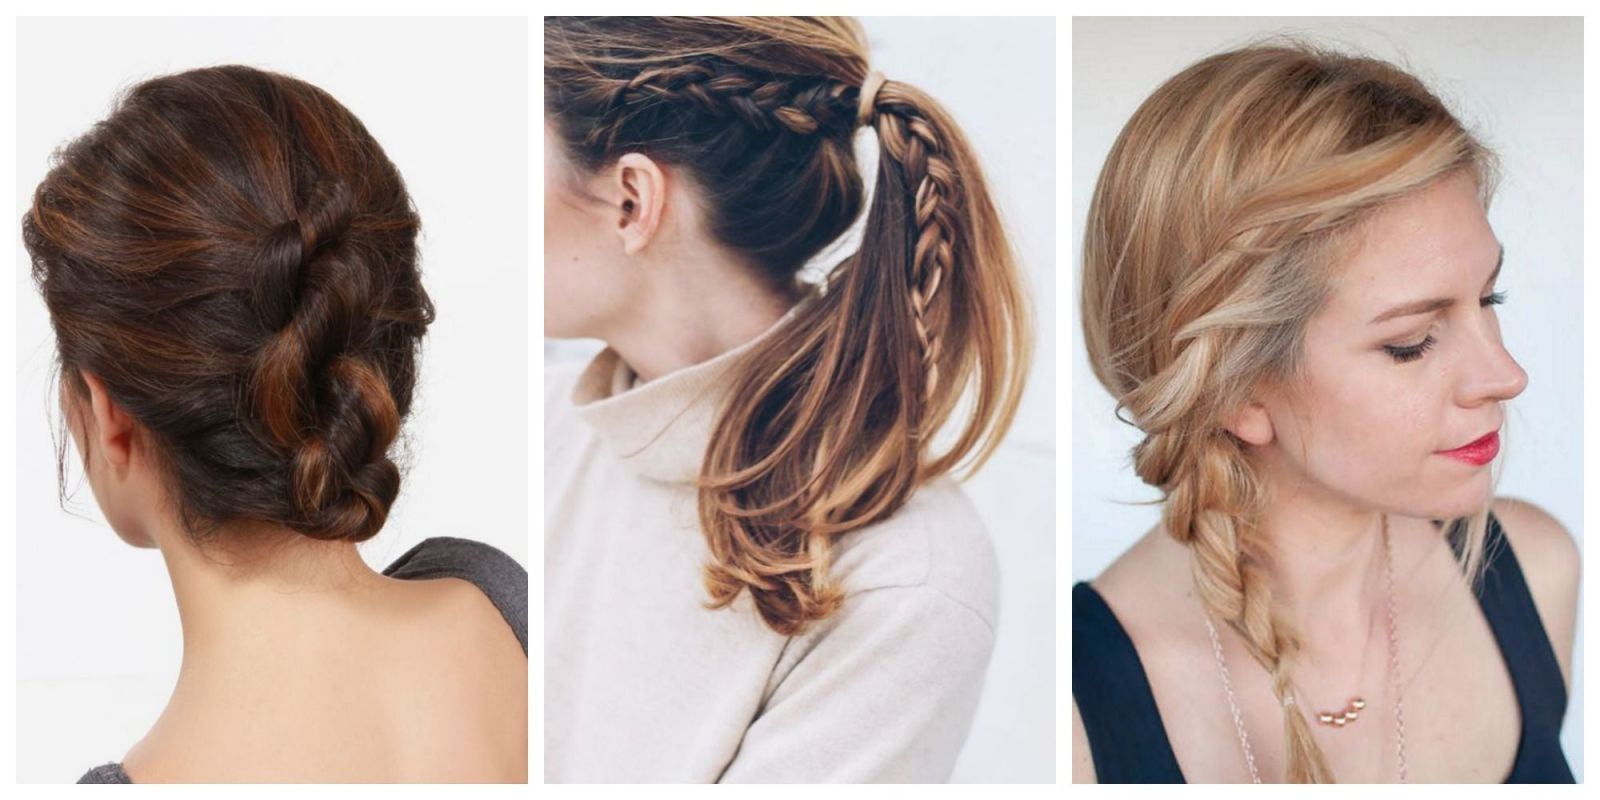 best hairstyles & haircuts for women in 2017 - stylish hair ideas